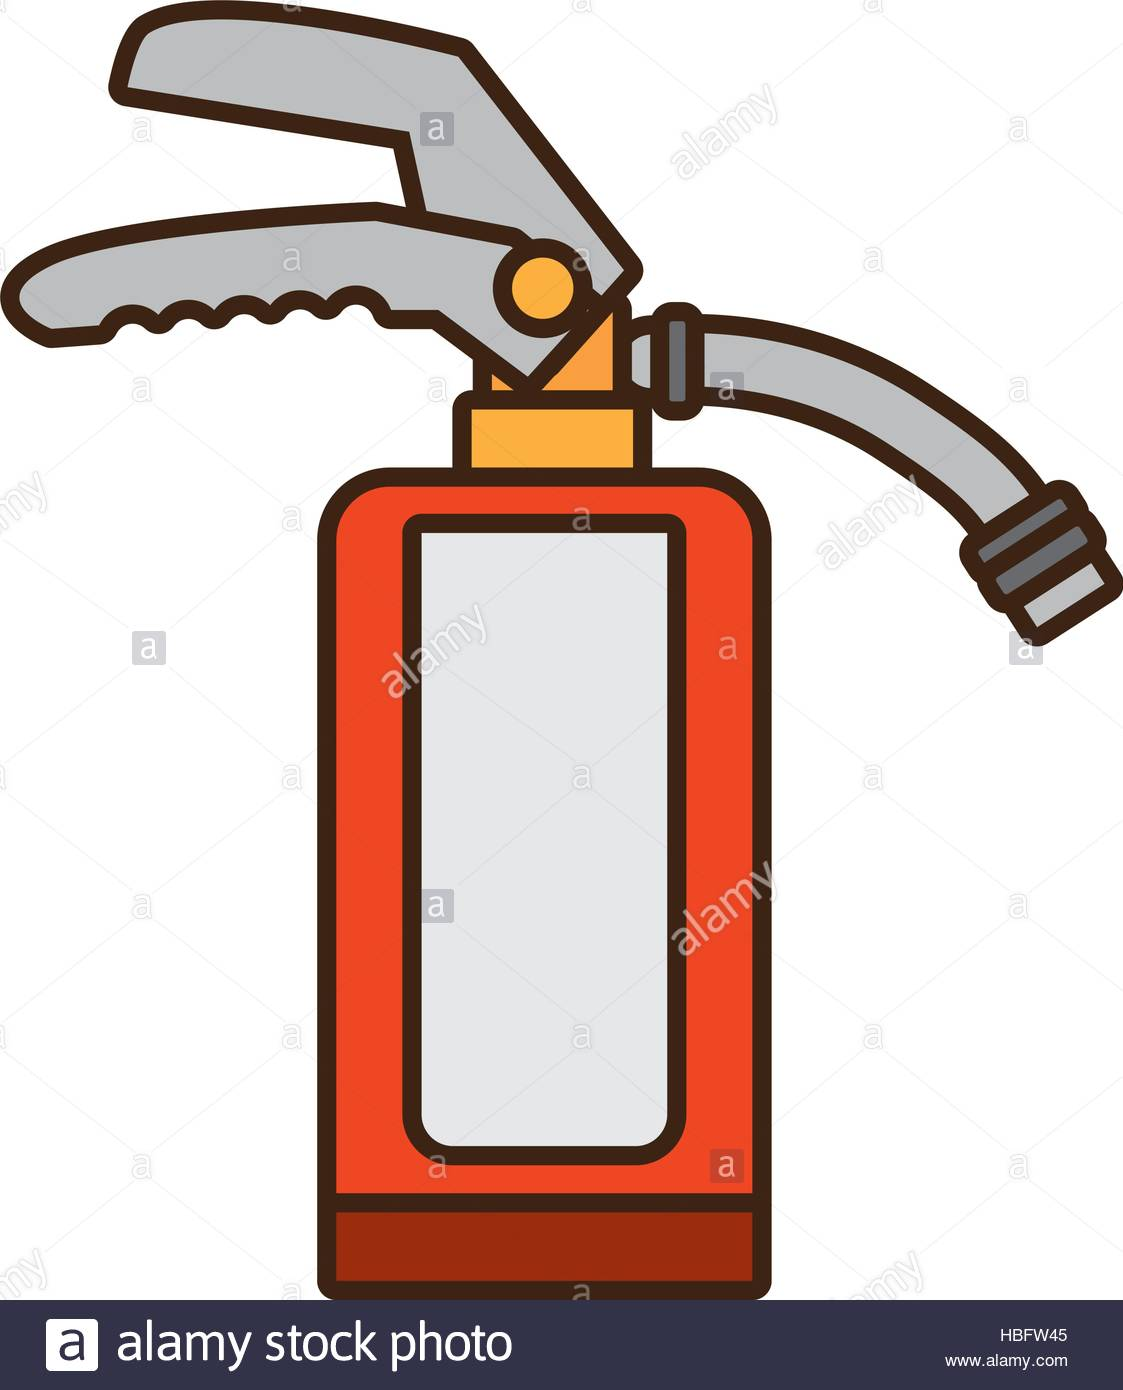 1123x1390 Cartoon Fire Extinguisher Safety Security Industrial Design Vector